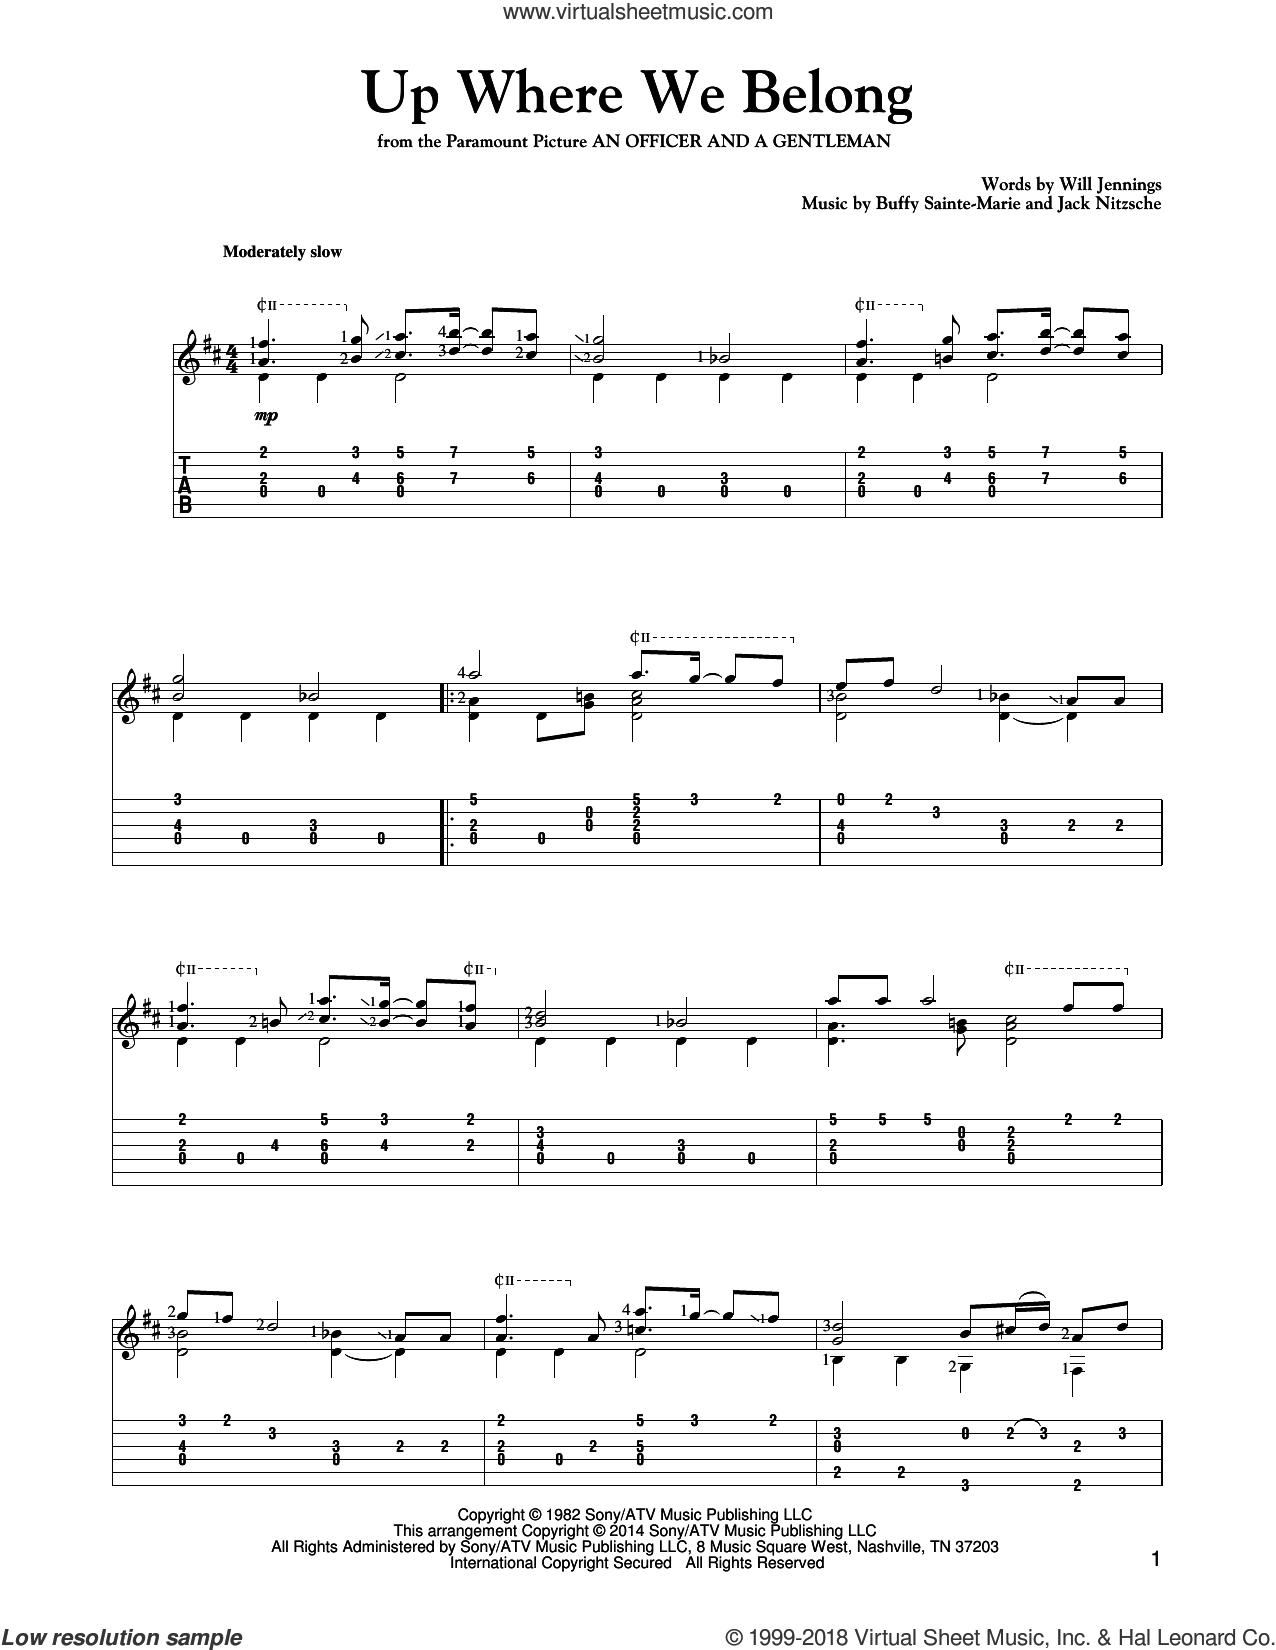 Up Where We Belong sheet music for guitar solo by Will Jennings, Mark Phillips, BeBe and CeCe Winans, Joe Cocker & Jennifer Warnes and Buffy Sainte-Marie. Score Image Preview.